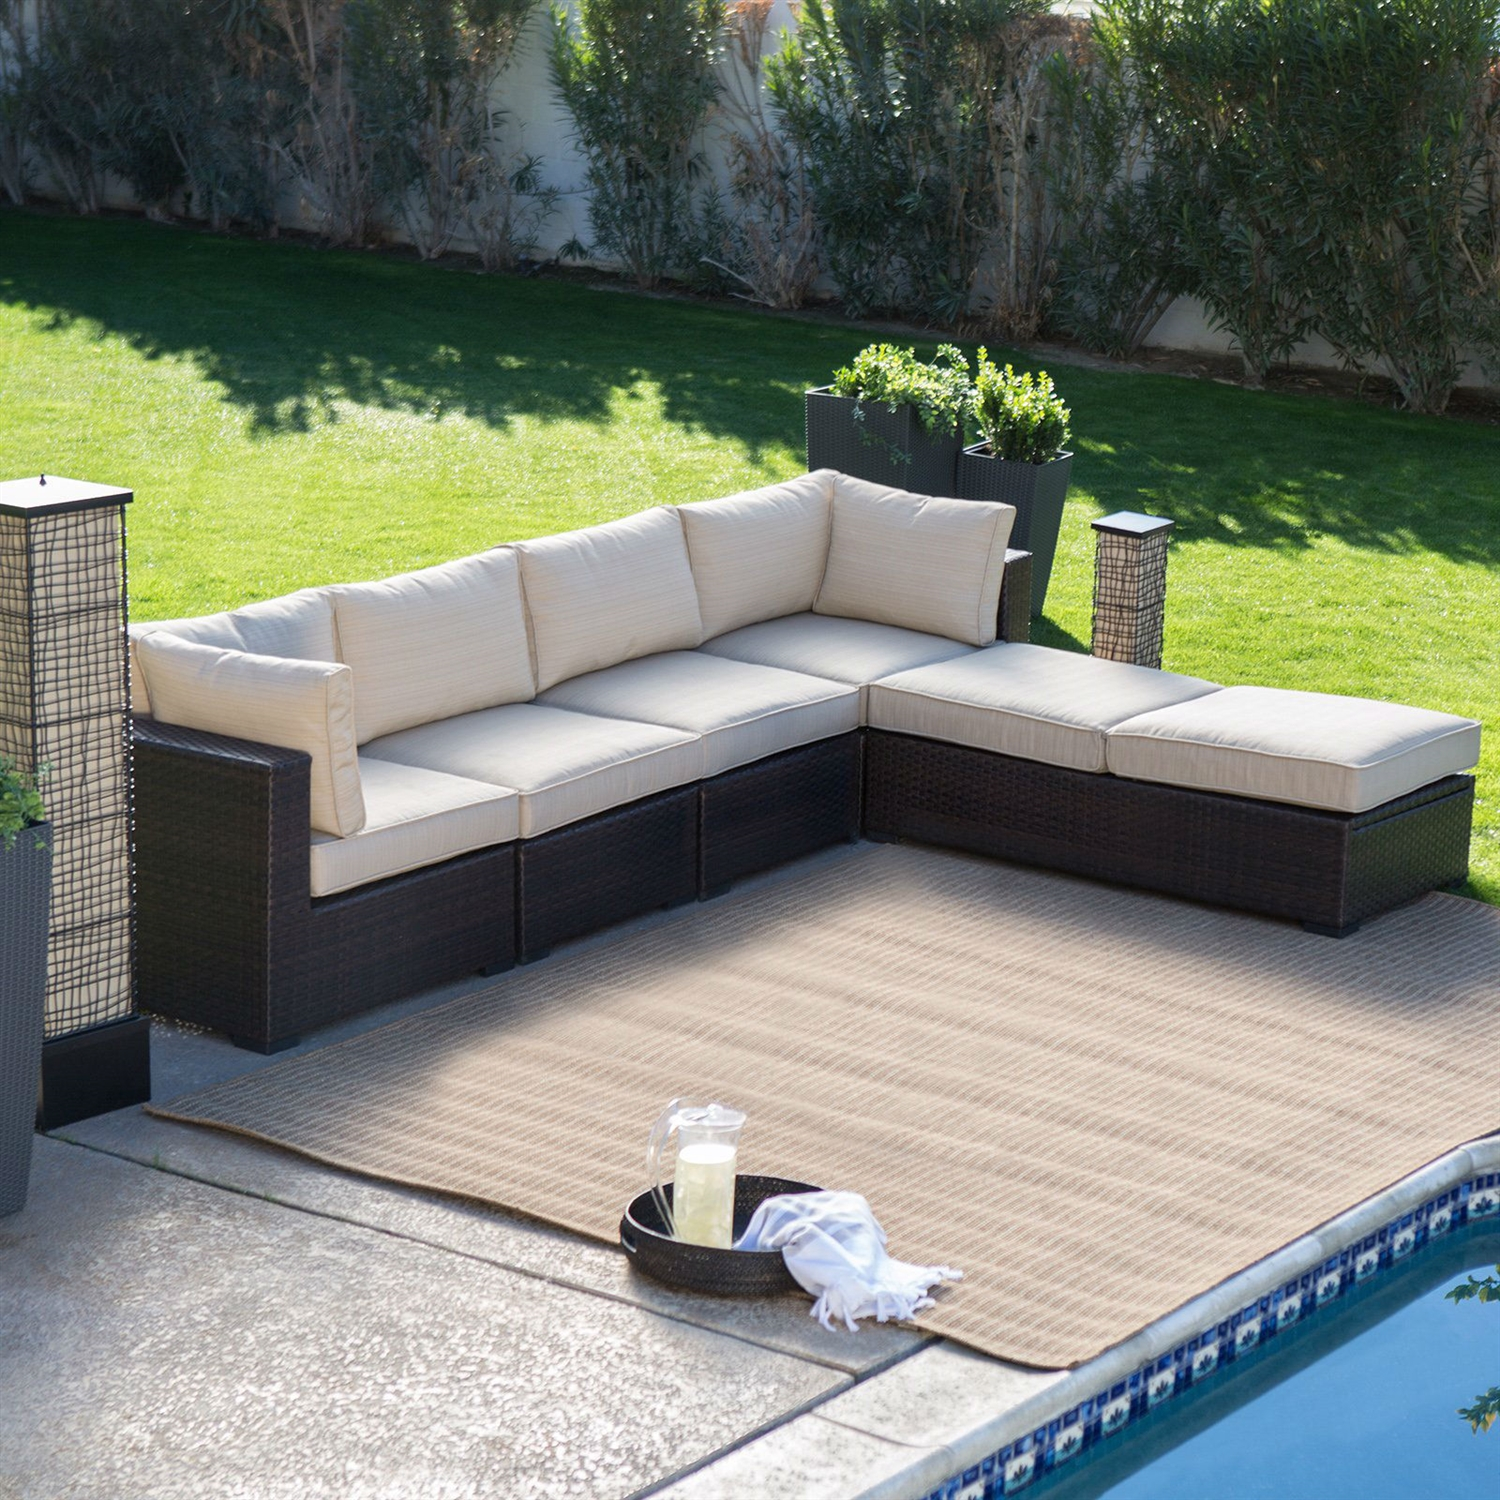 Beau Outdoor Wicker Resin 6 Piece Sectional Sofa Patio Furniture Conversation Set  With Tan Stripe Cushions